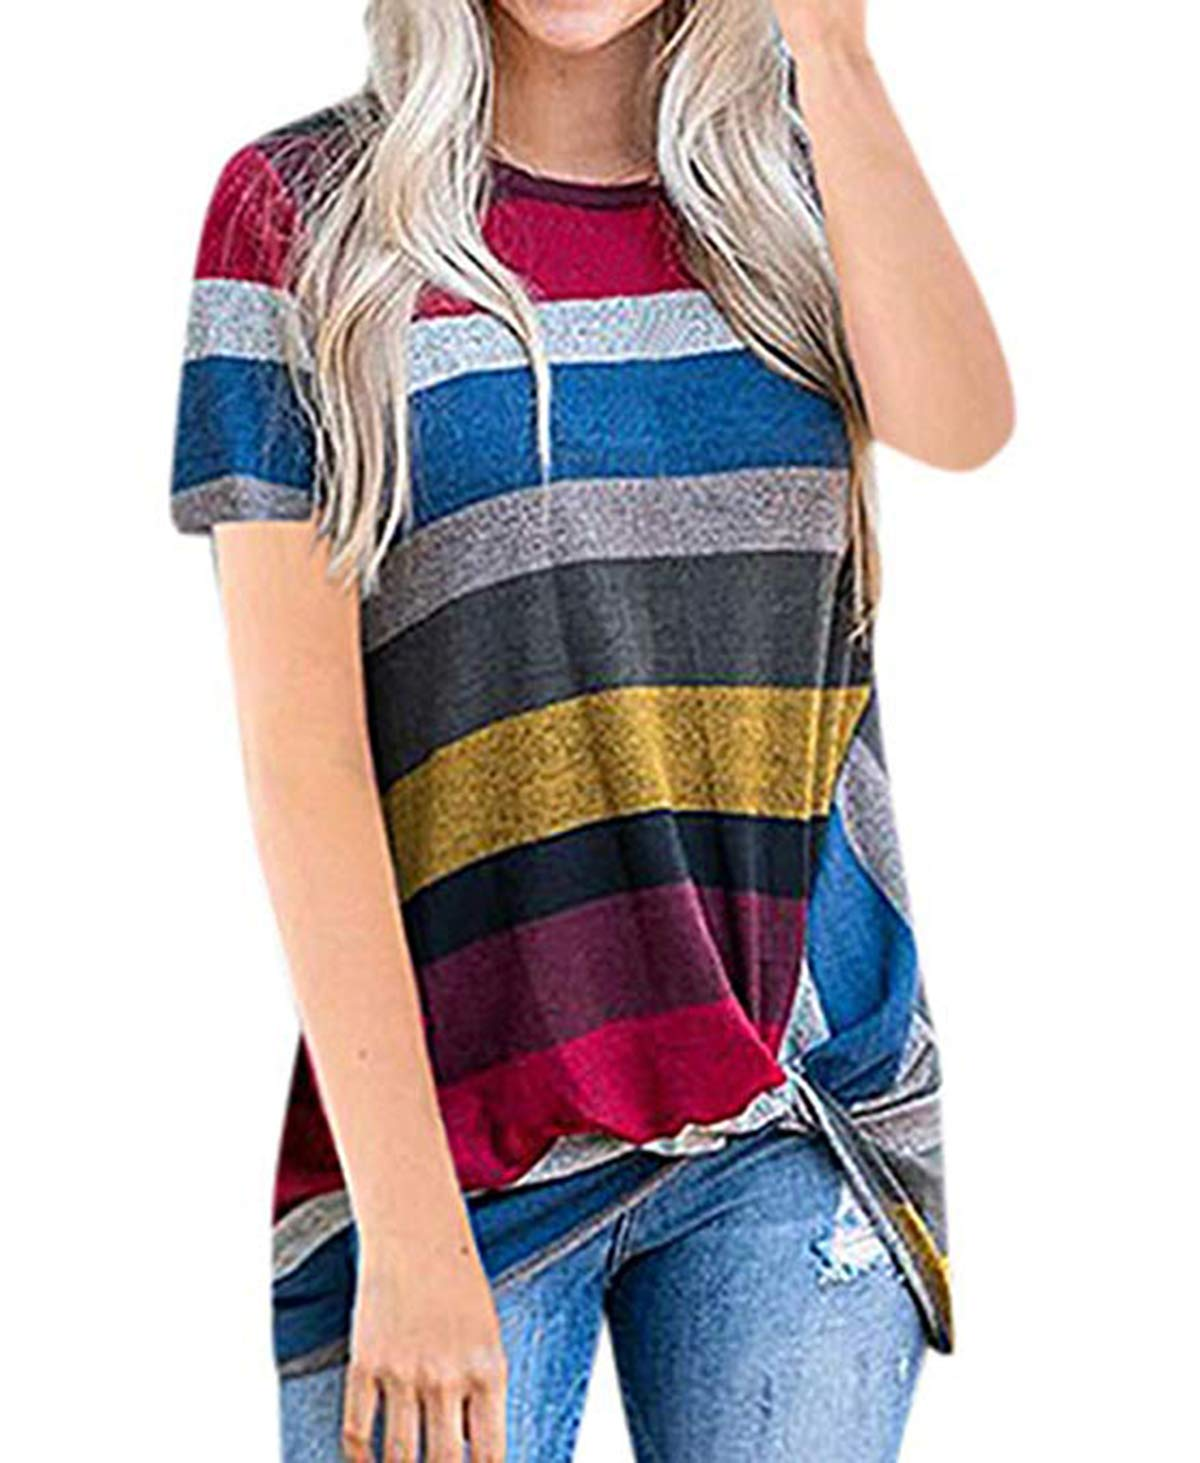 Eanklosco Women's Tops Striped T-Shirts Front Knot Tunic Casual Blouses Short Sleeve (XXL/UK 16, Red)